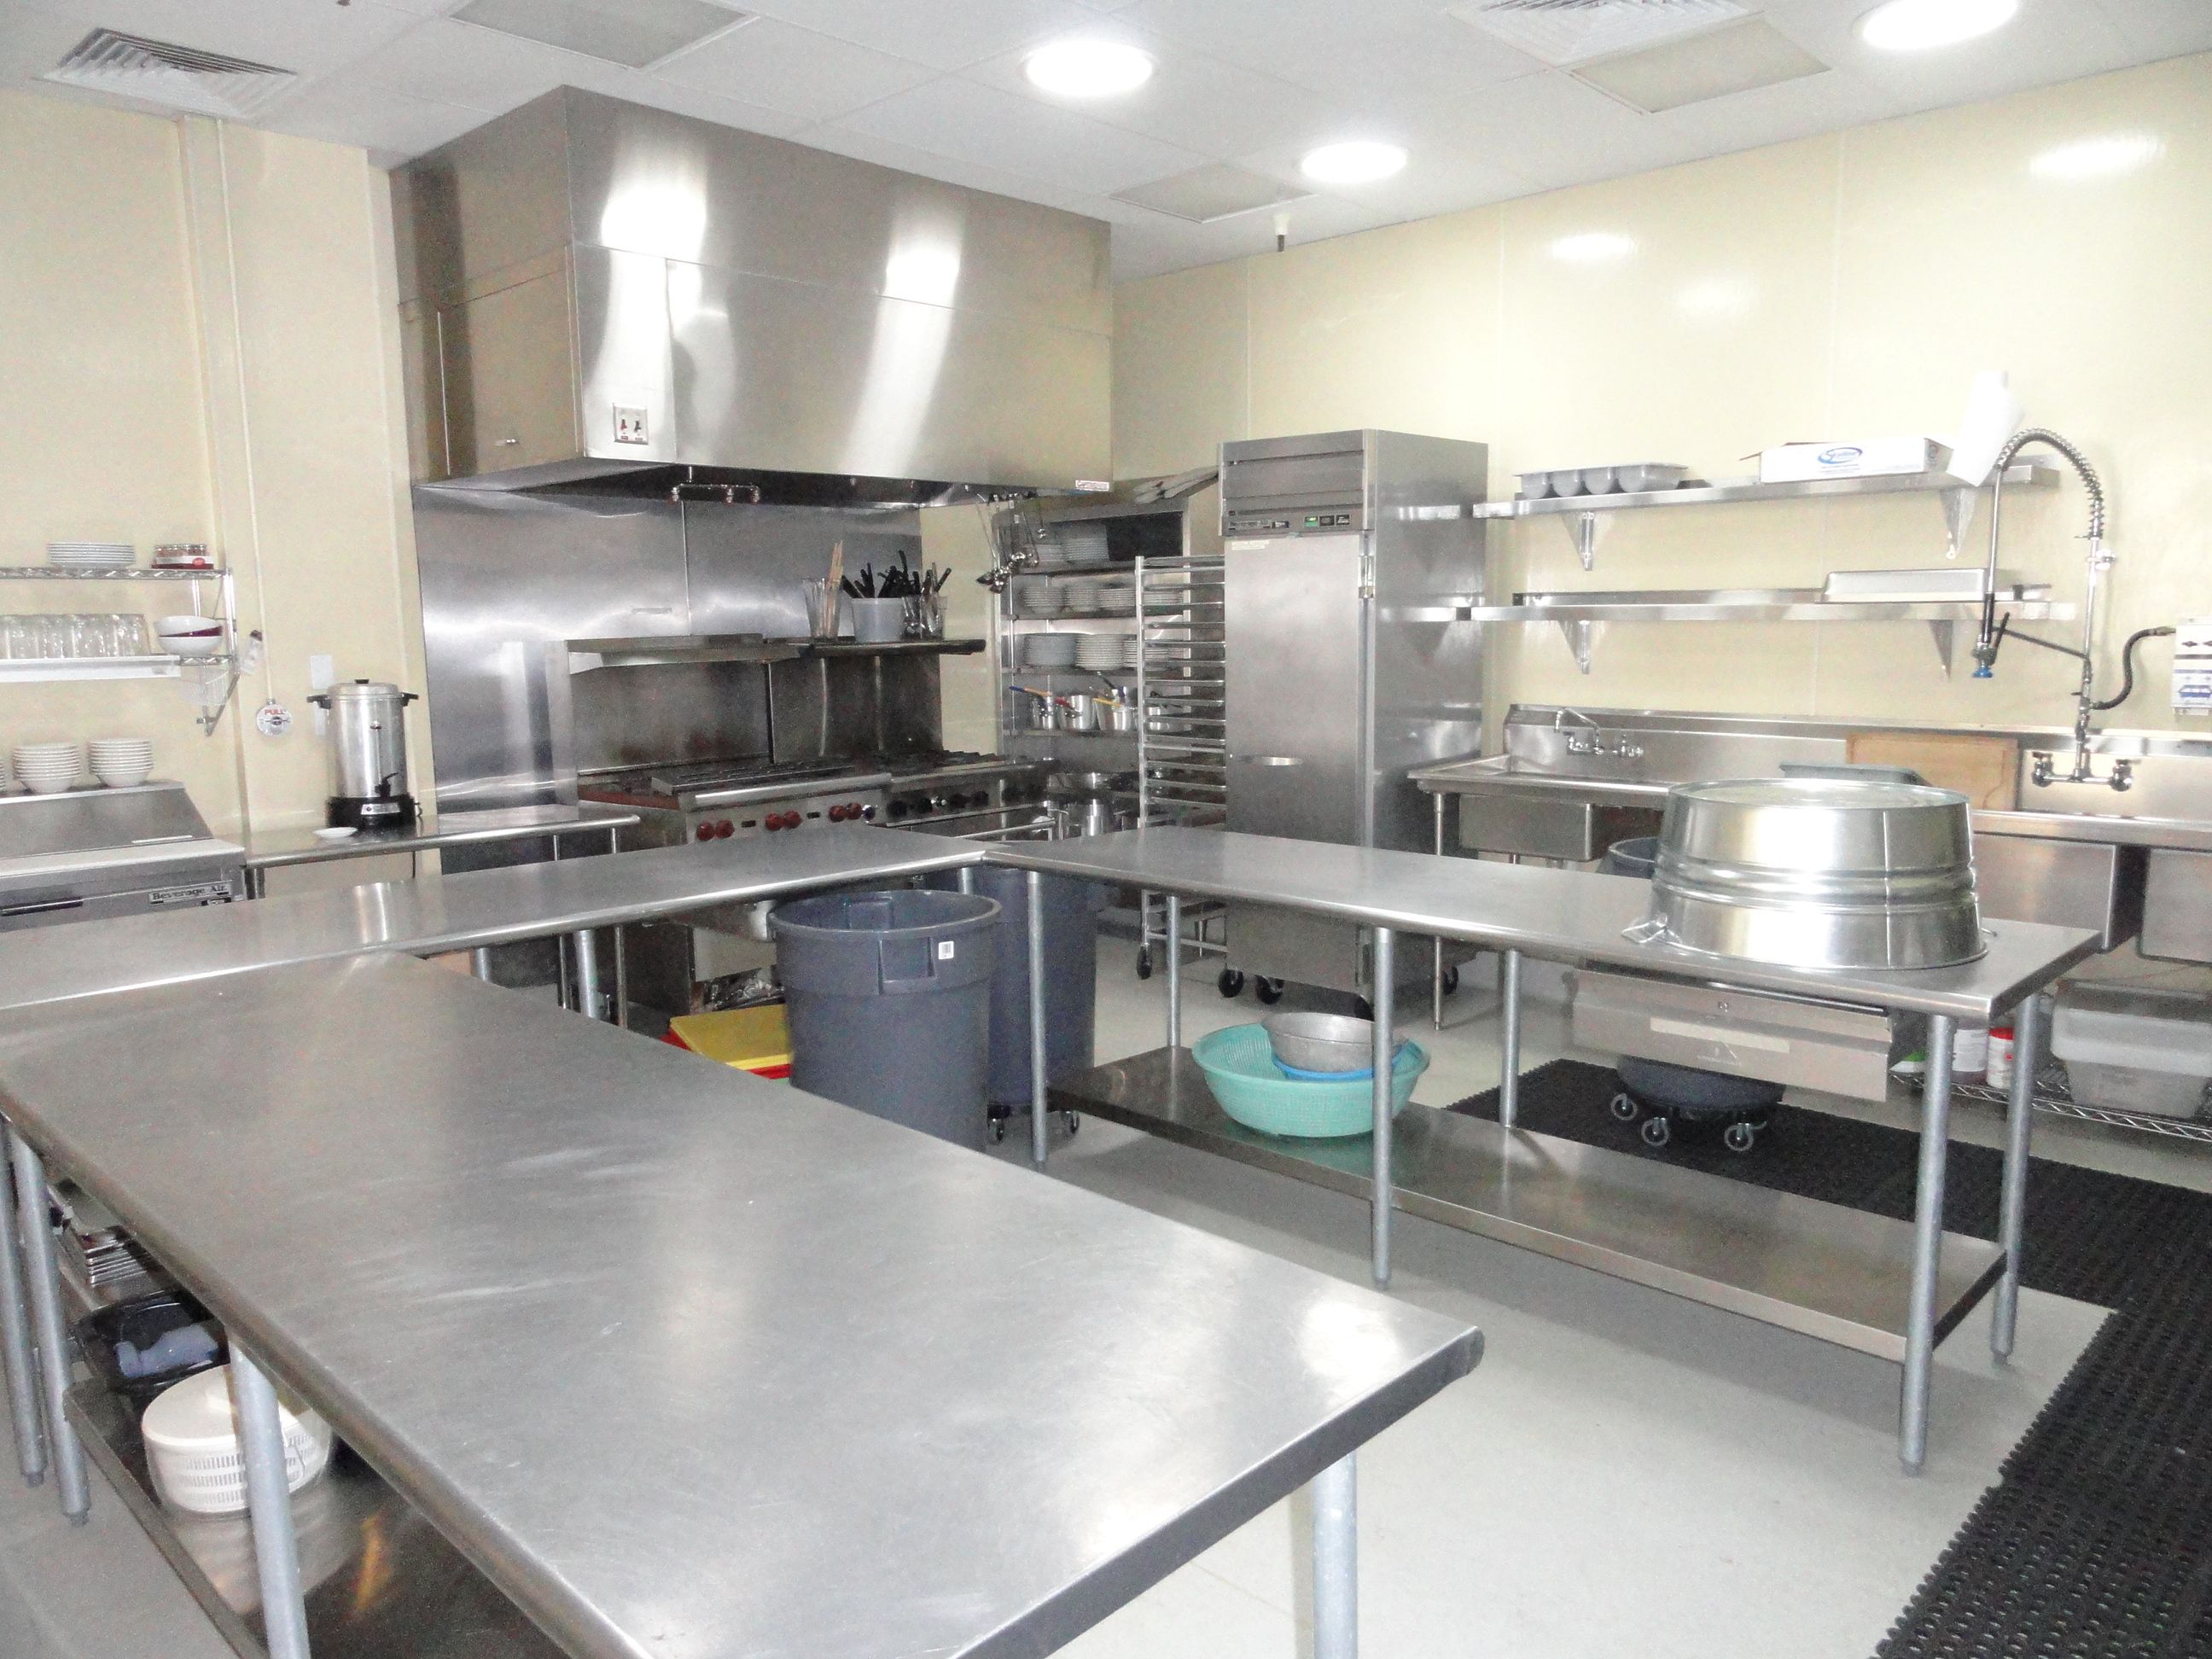 12 Excellent Small Commercial Kitchen Equipment Digital: commercial kitchen layout plan